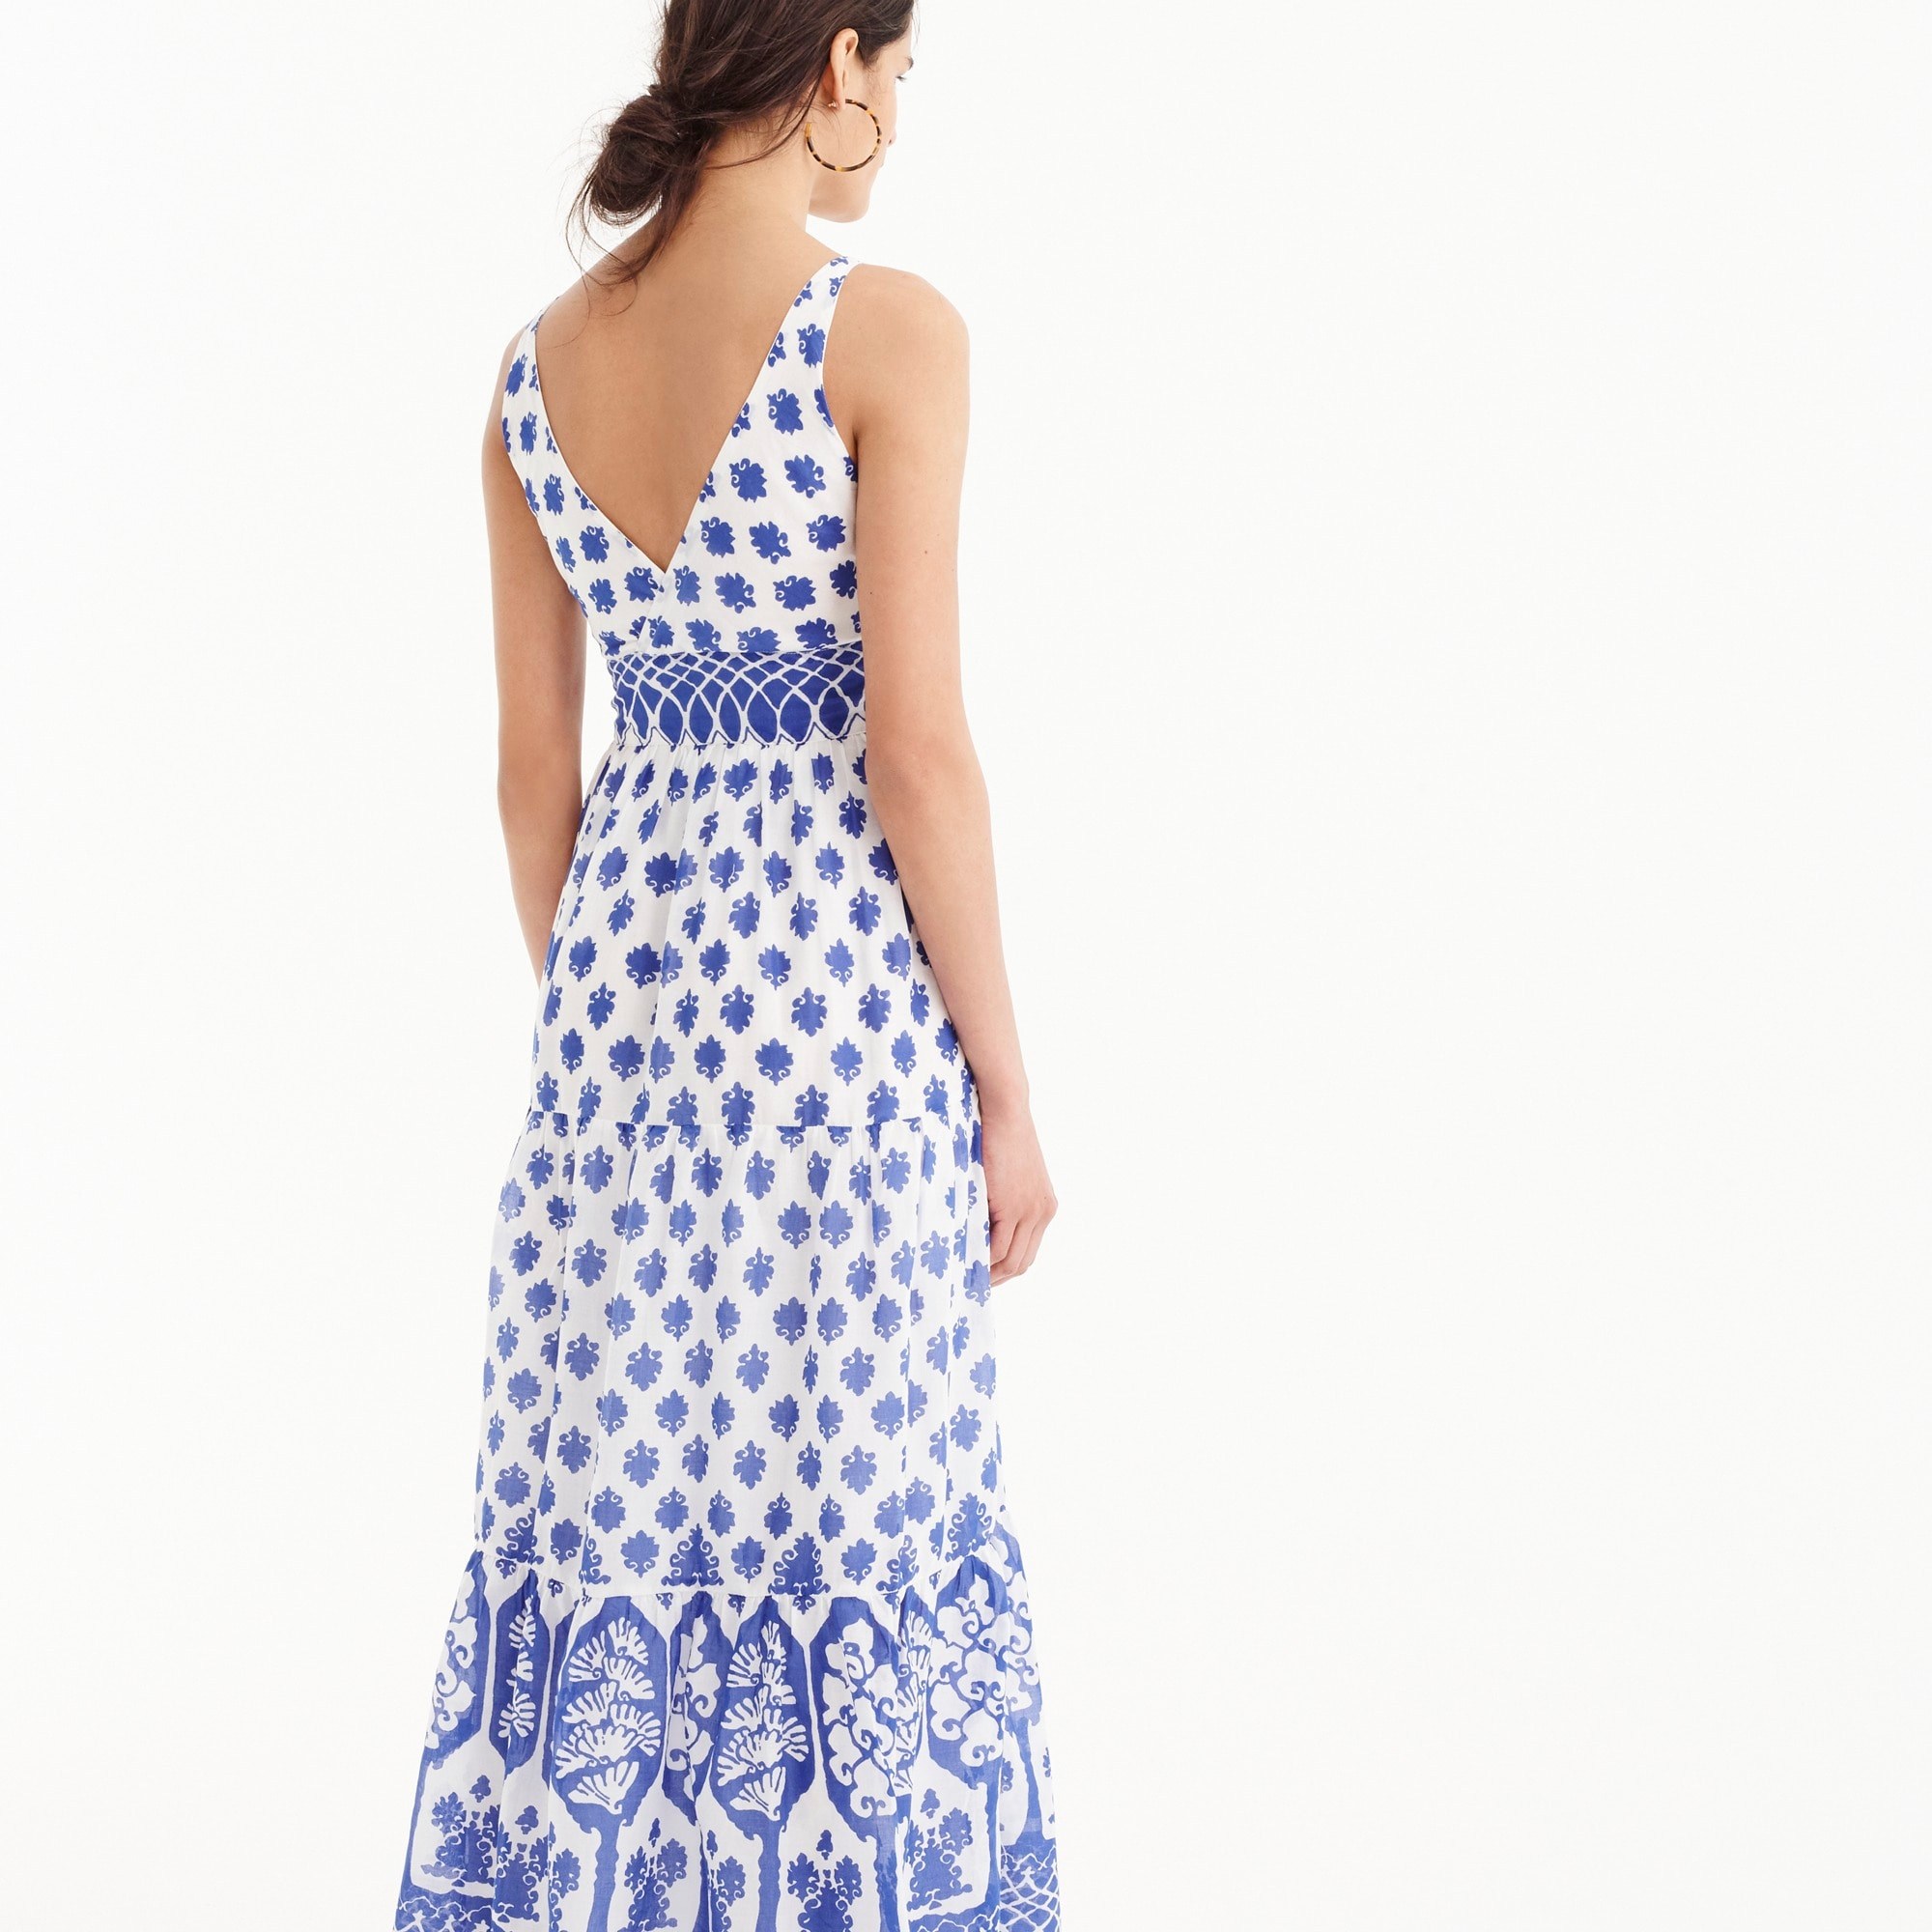 Image 4 for V-neck maxi dress in block print